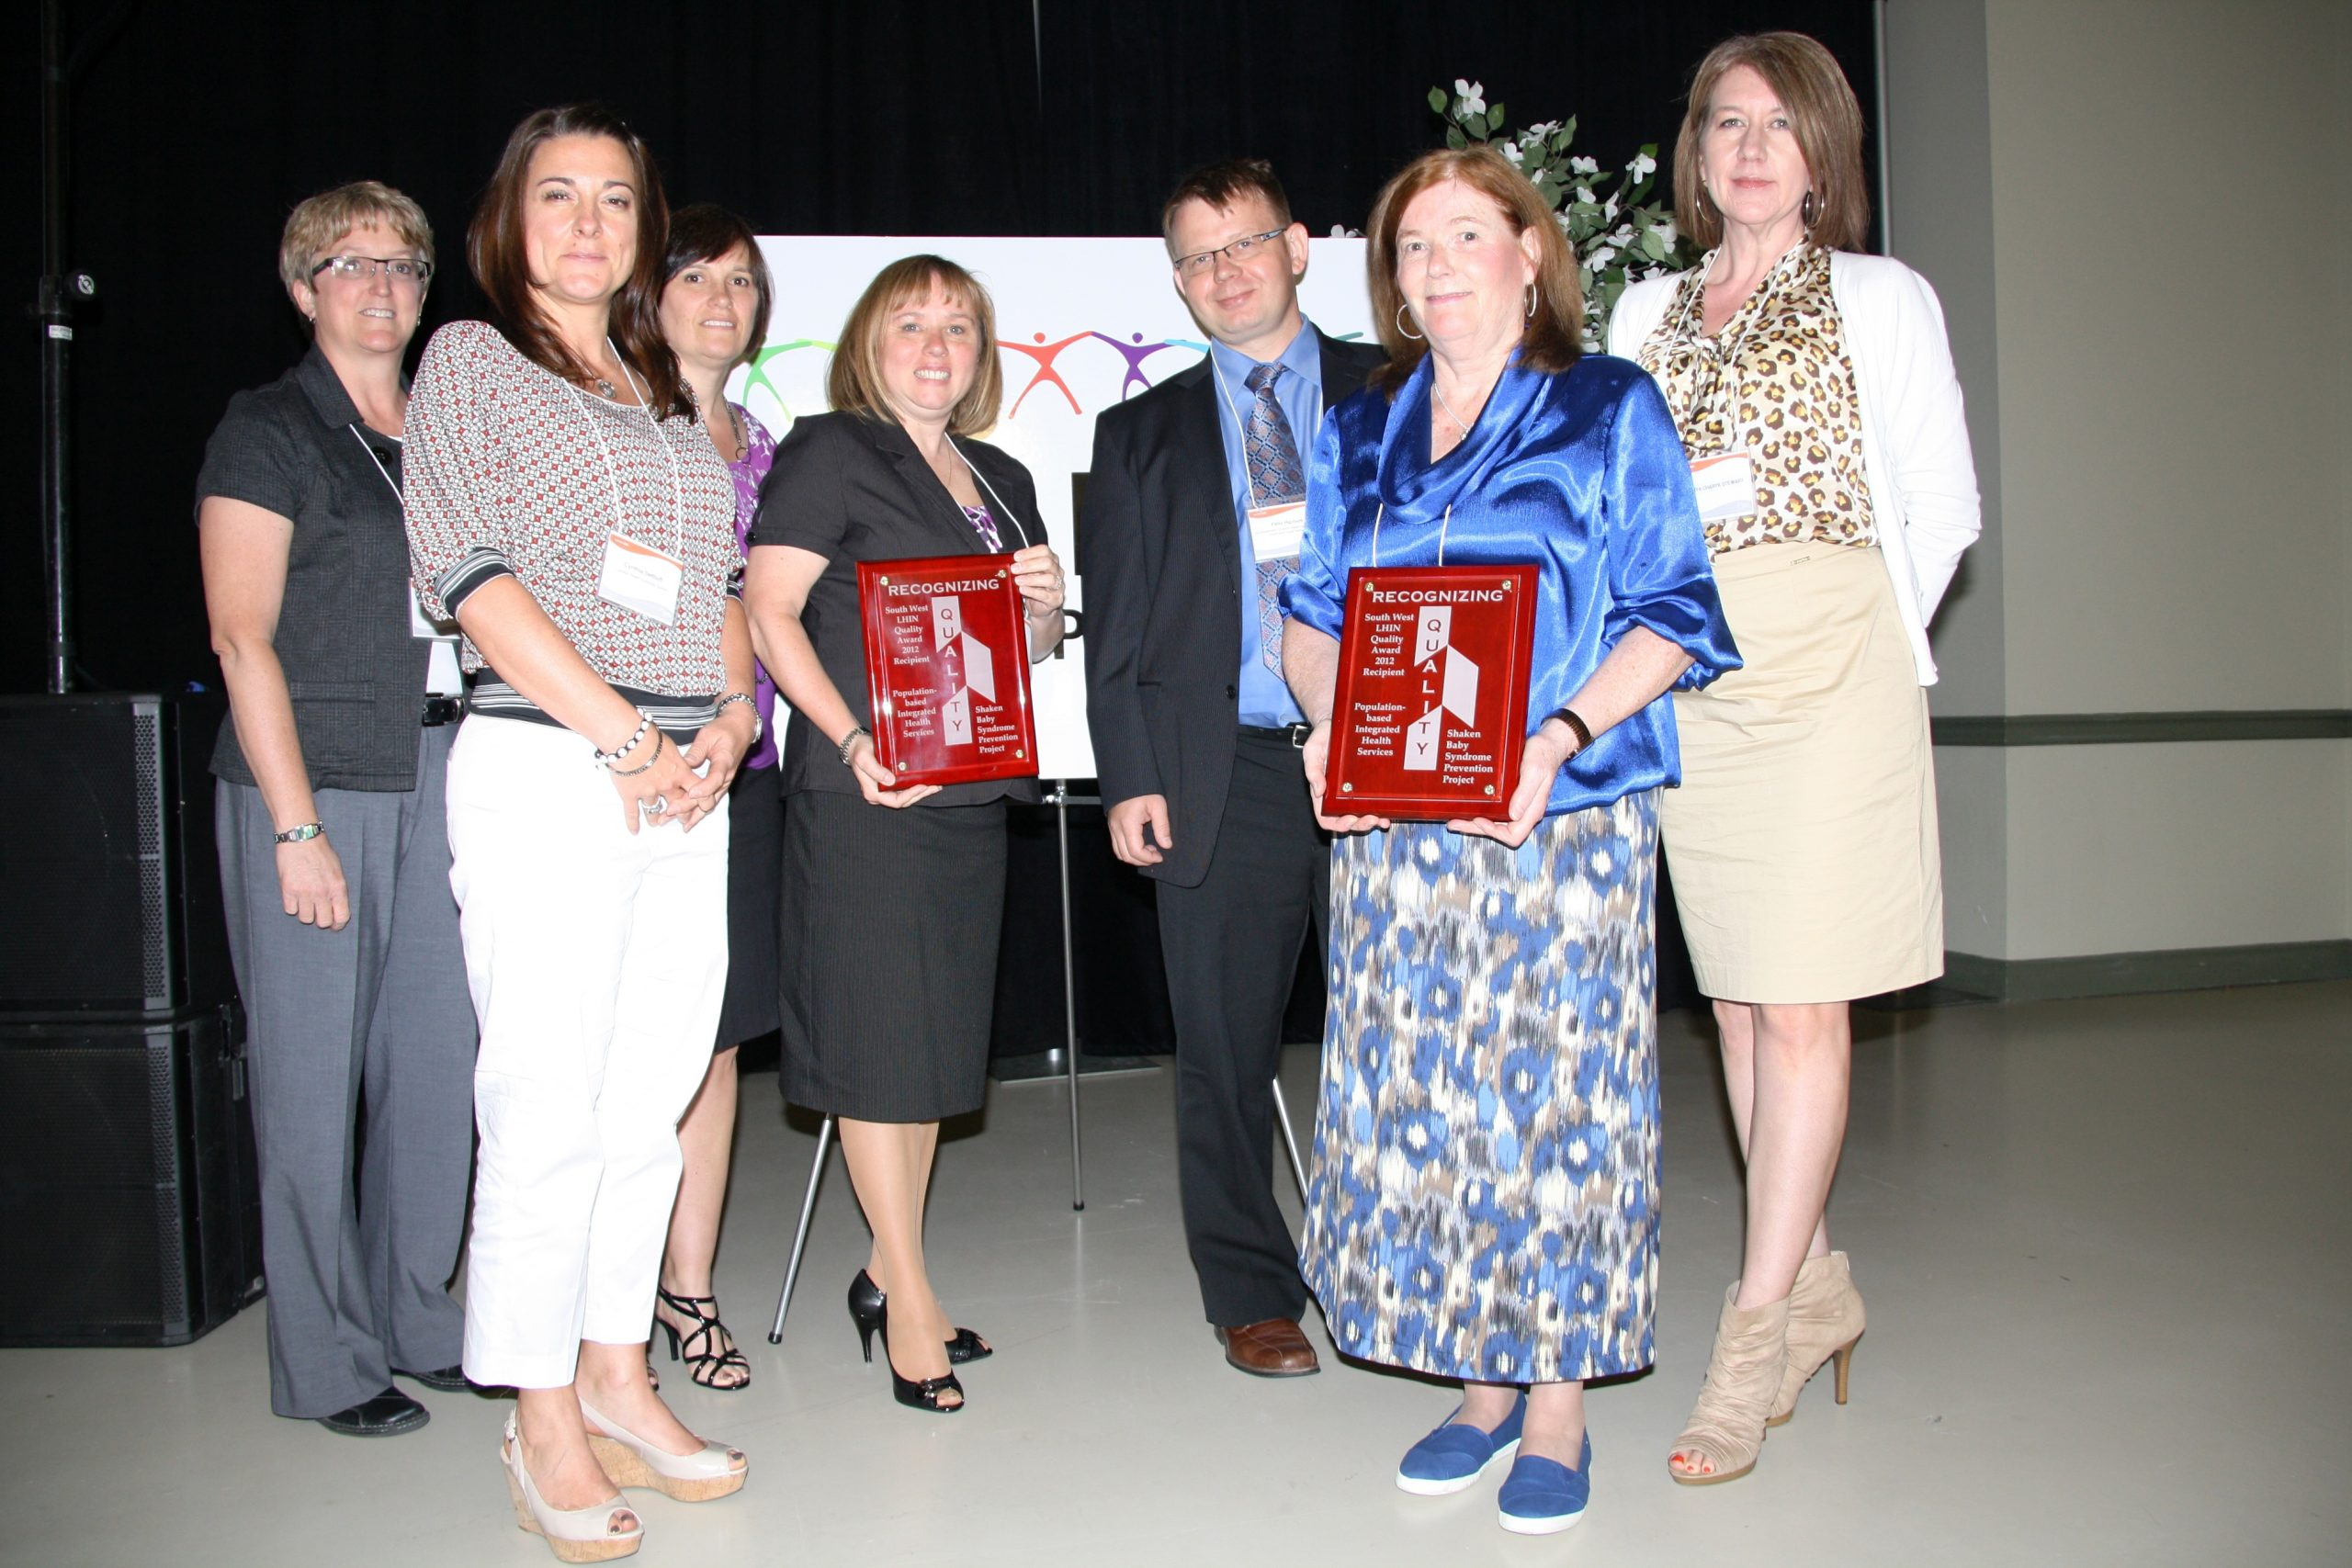 SW LHIN Quality Award Presentation Award Group 1 (2012) to Shaken Baby Syndrome Prevention Project